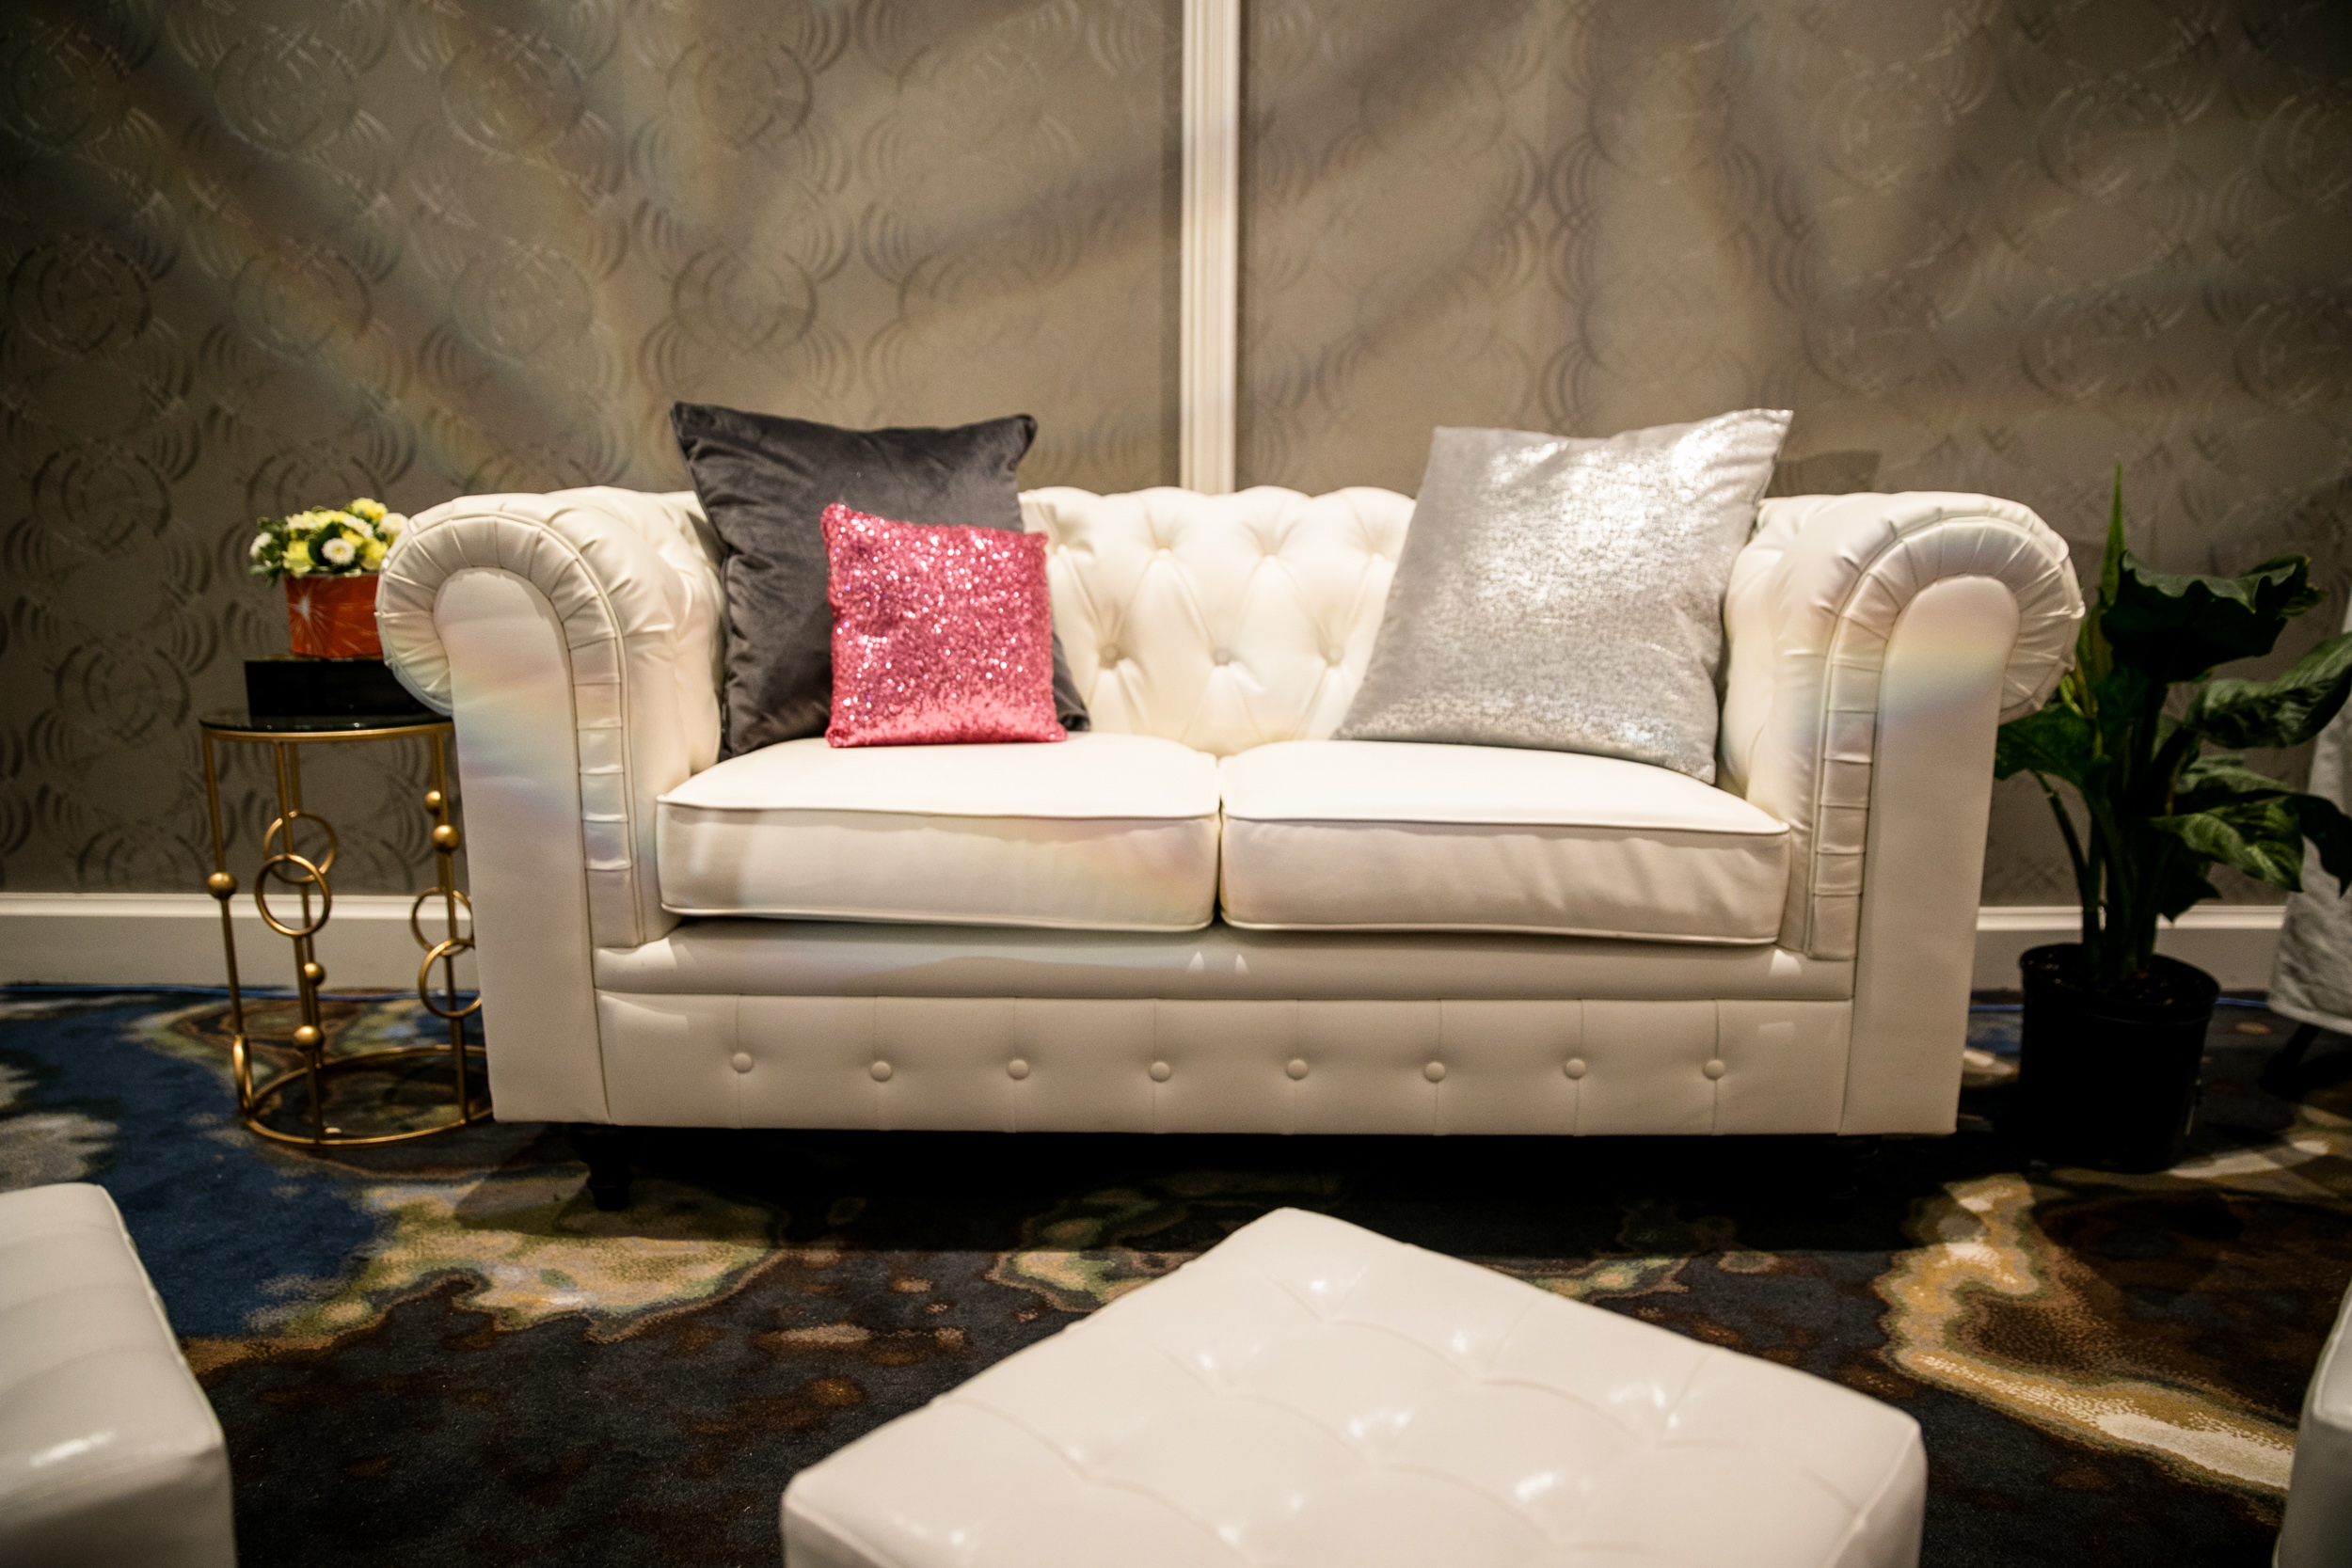 White tufted leather loveseats with dark wooden feet.